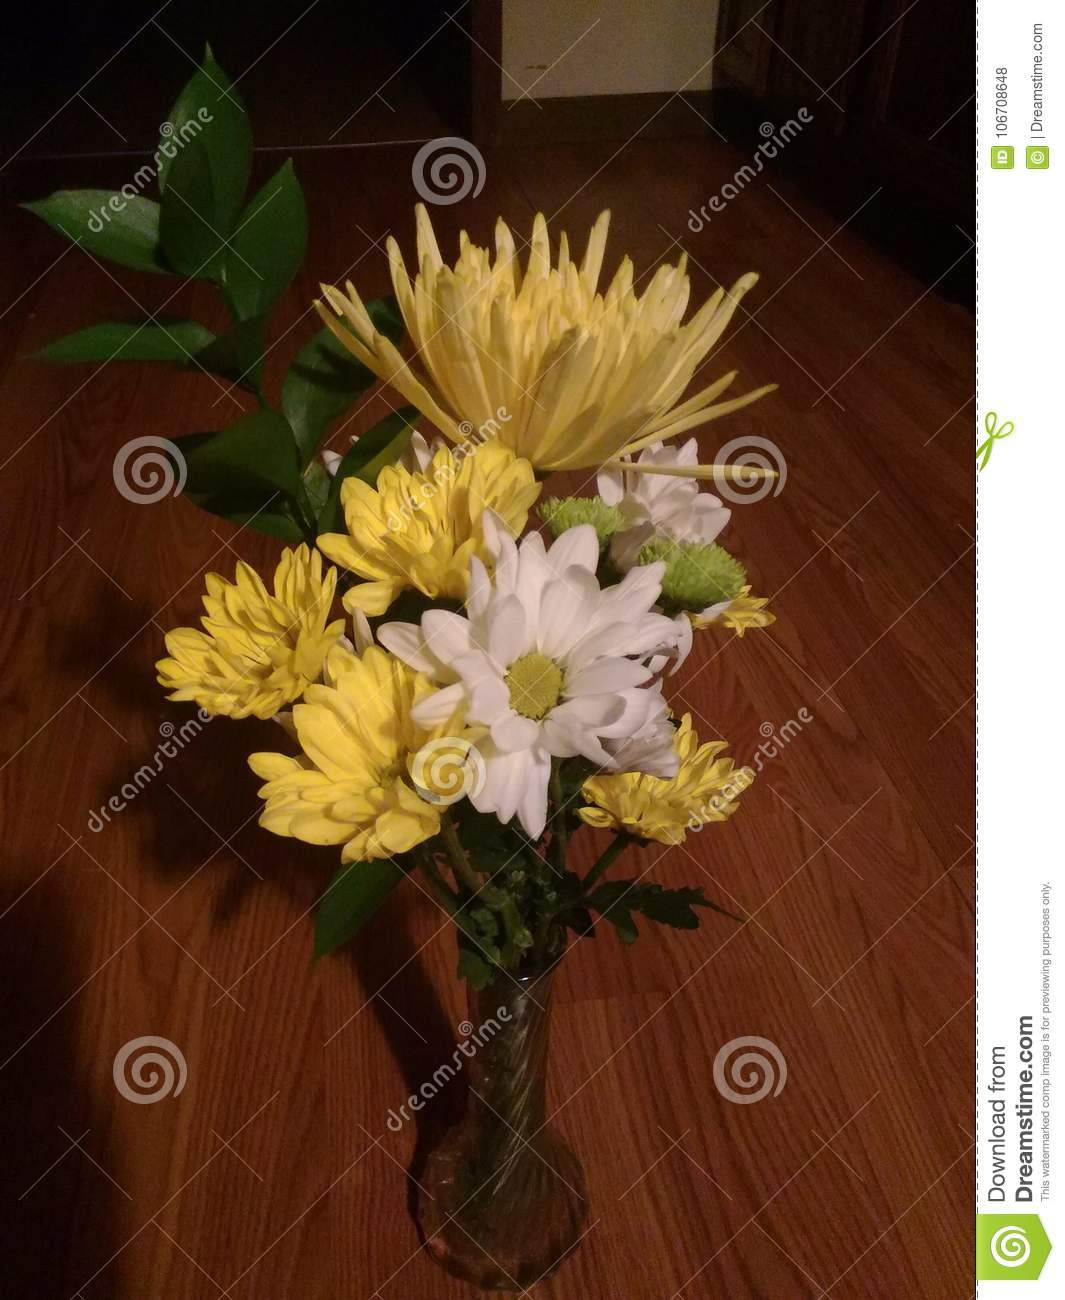 Pretty Yellow Florals Stock Photo Image Of White Flower 106708648